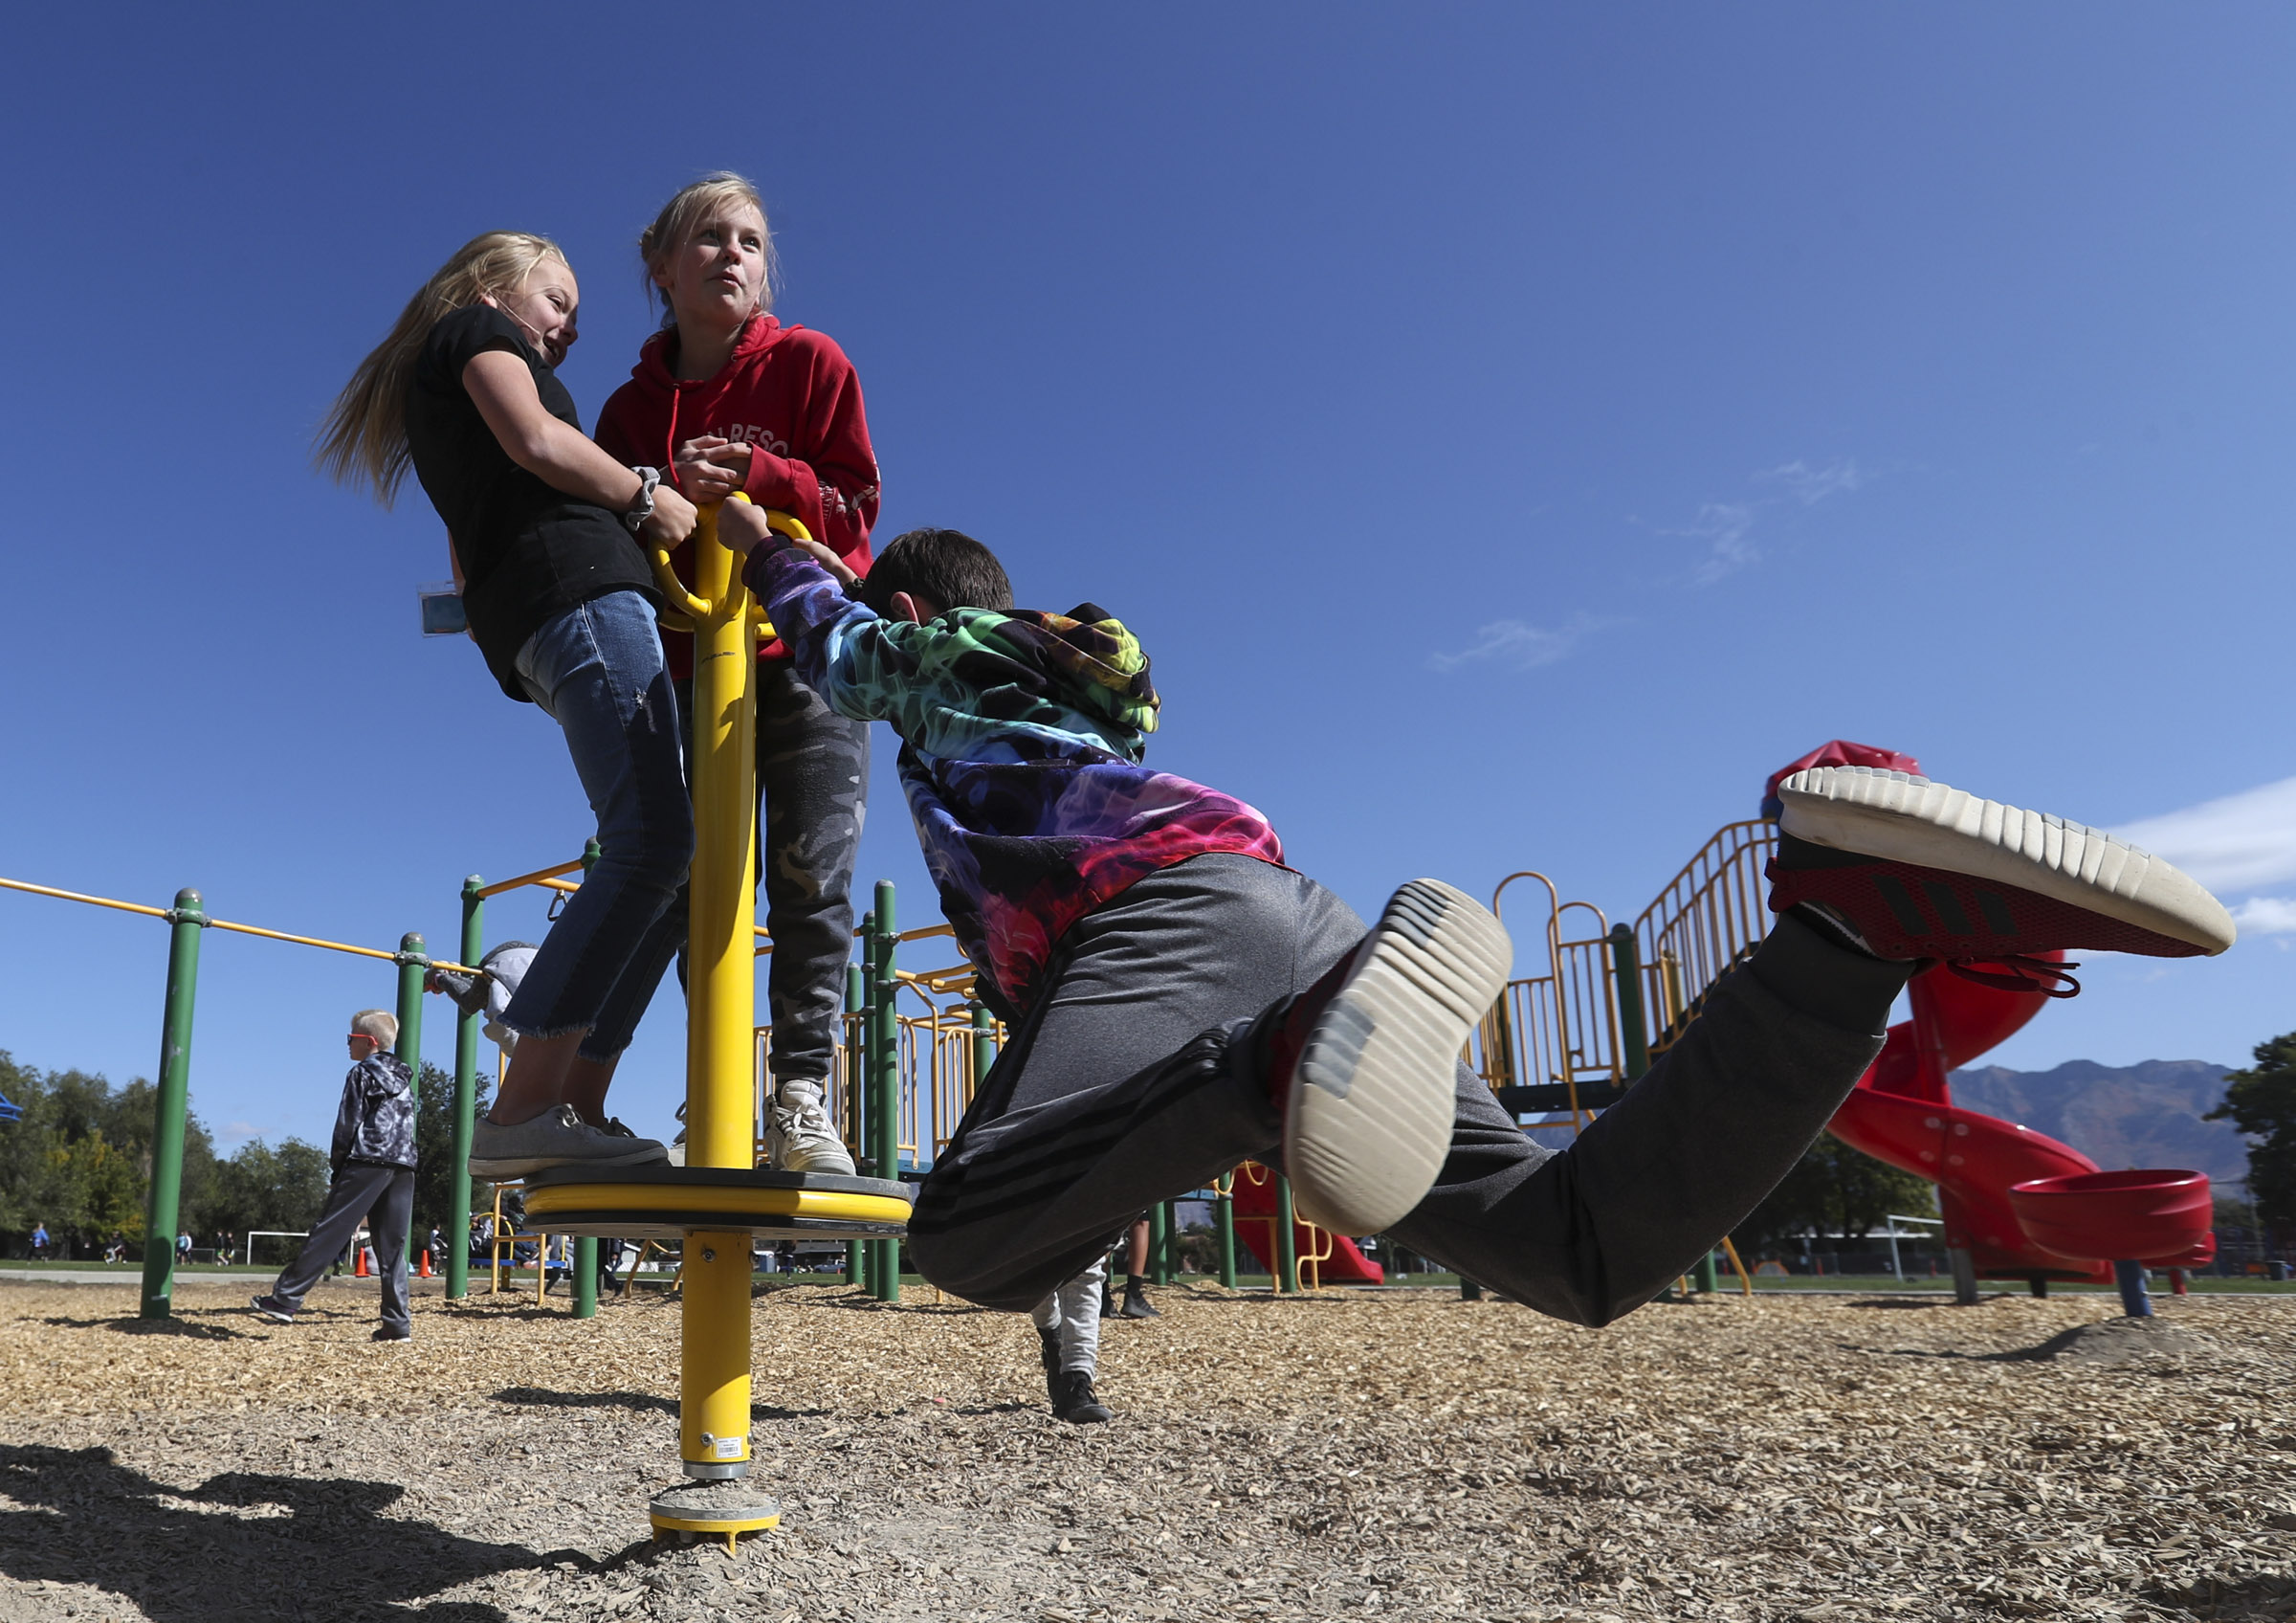 Sixth graders work together to twirl on a new piece of playground equipment during lunch recess at Liberty Elementary School in Murray on Thursday, Oct. 10, 2019.